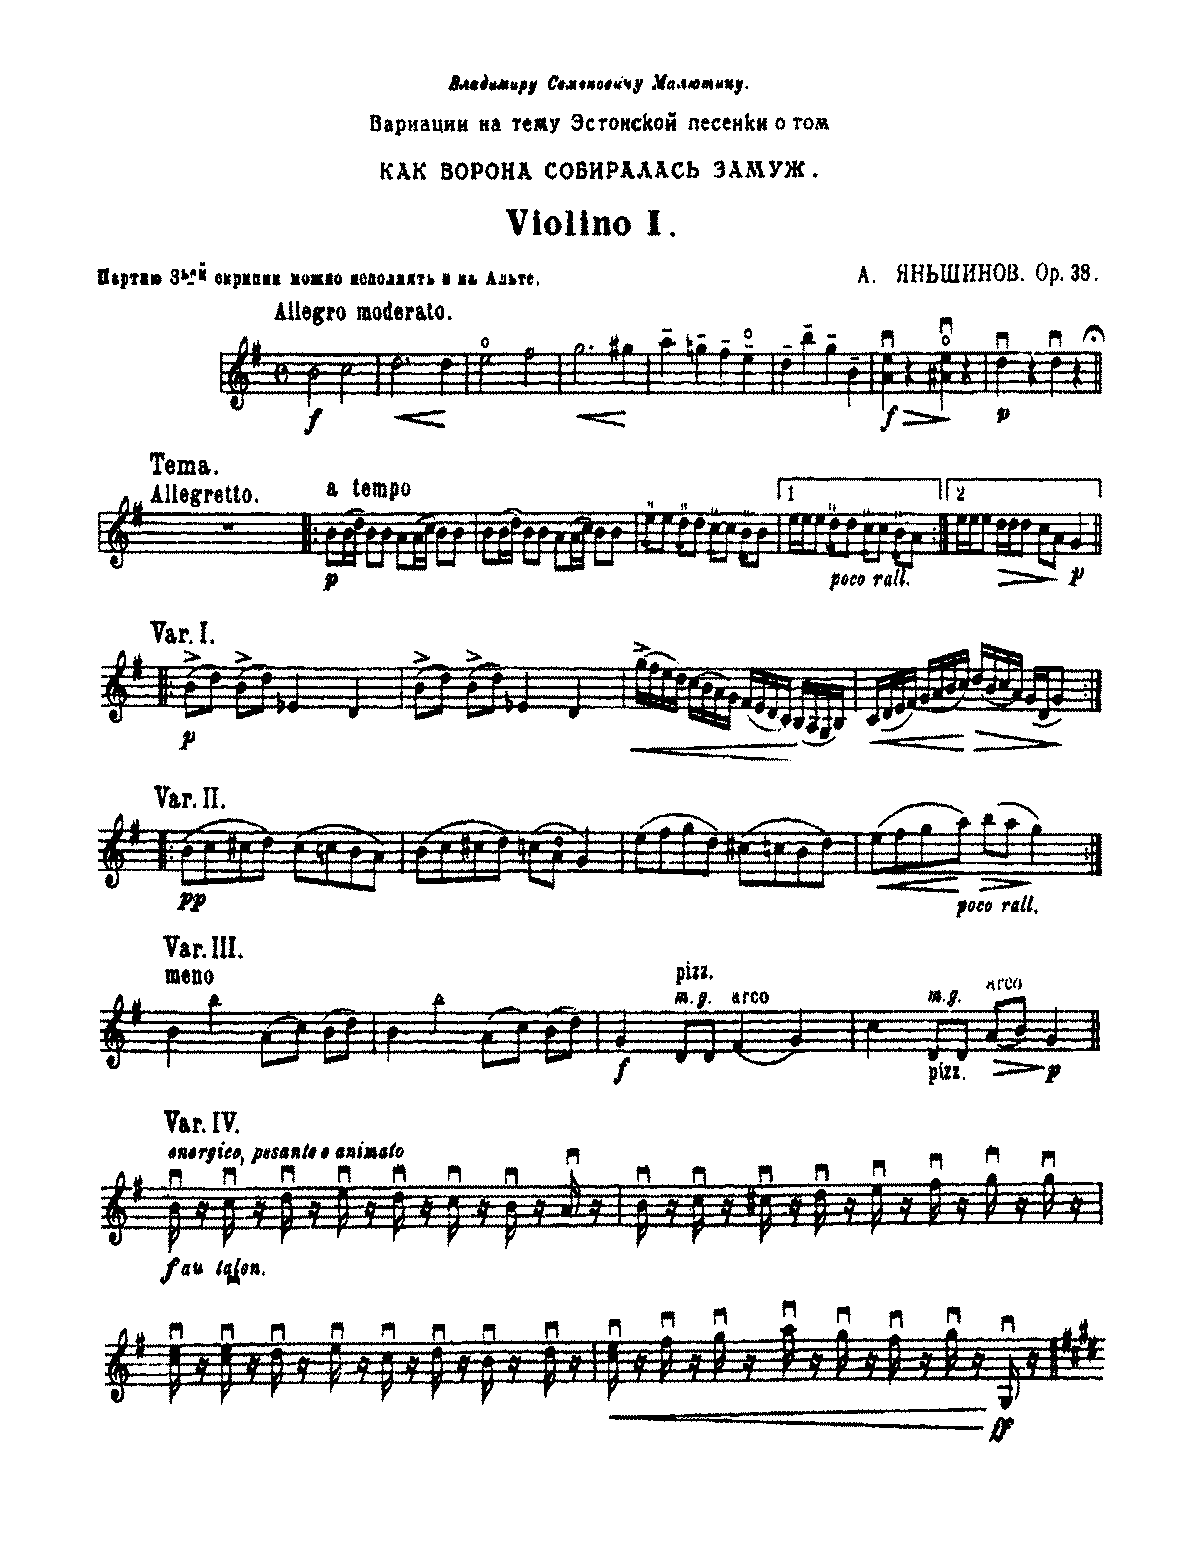 PMLP663829-YANSHINOV Variations on an Estonian Folk Song, Op.38 3 VNS.pdf